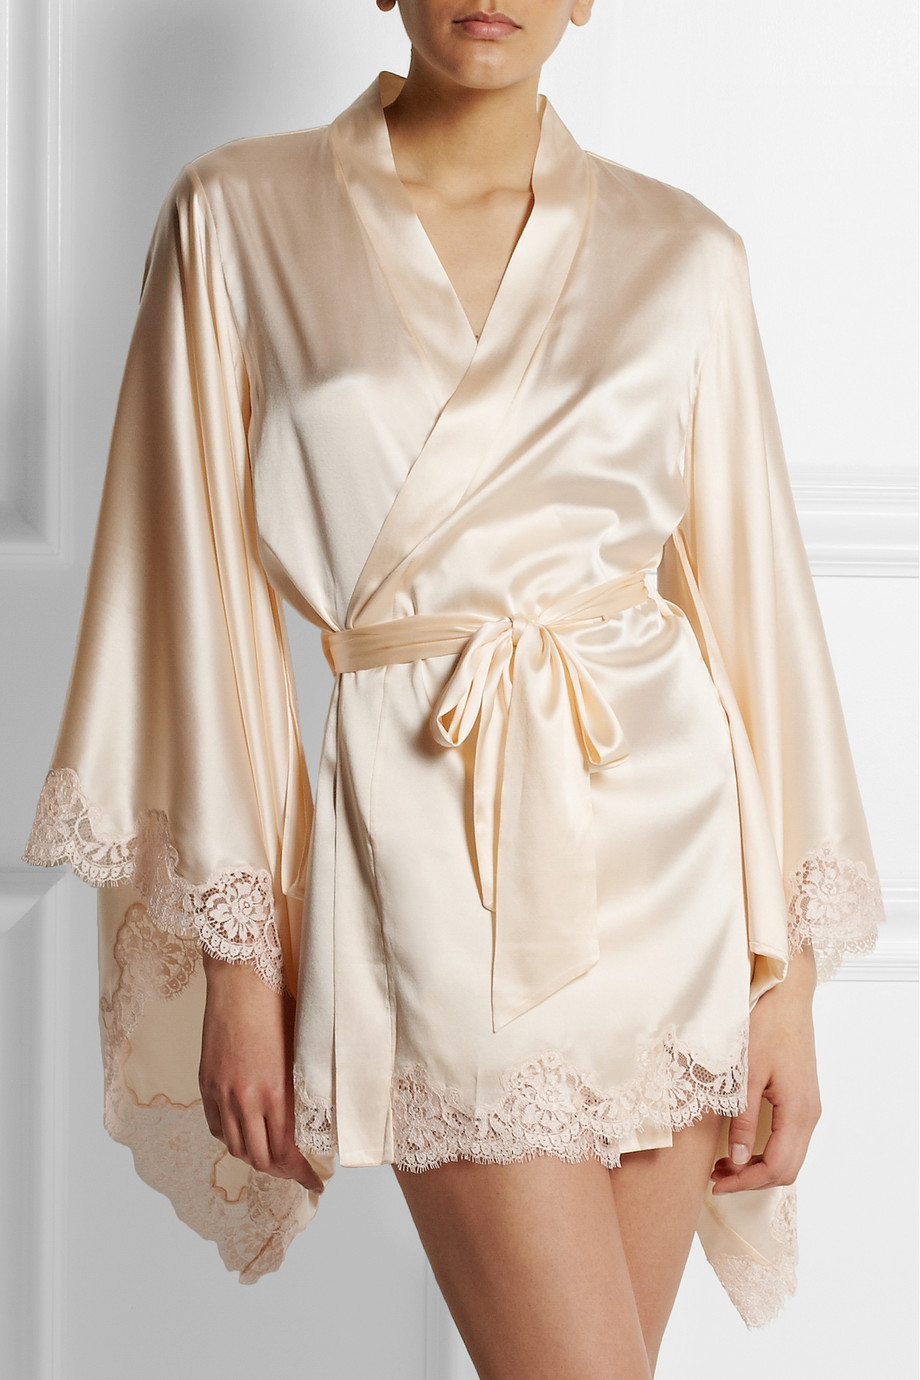 Lyst - Agent Provocateur Abbey Lacetrimmed Stretchsilk Satin Robe in ...